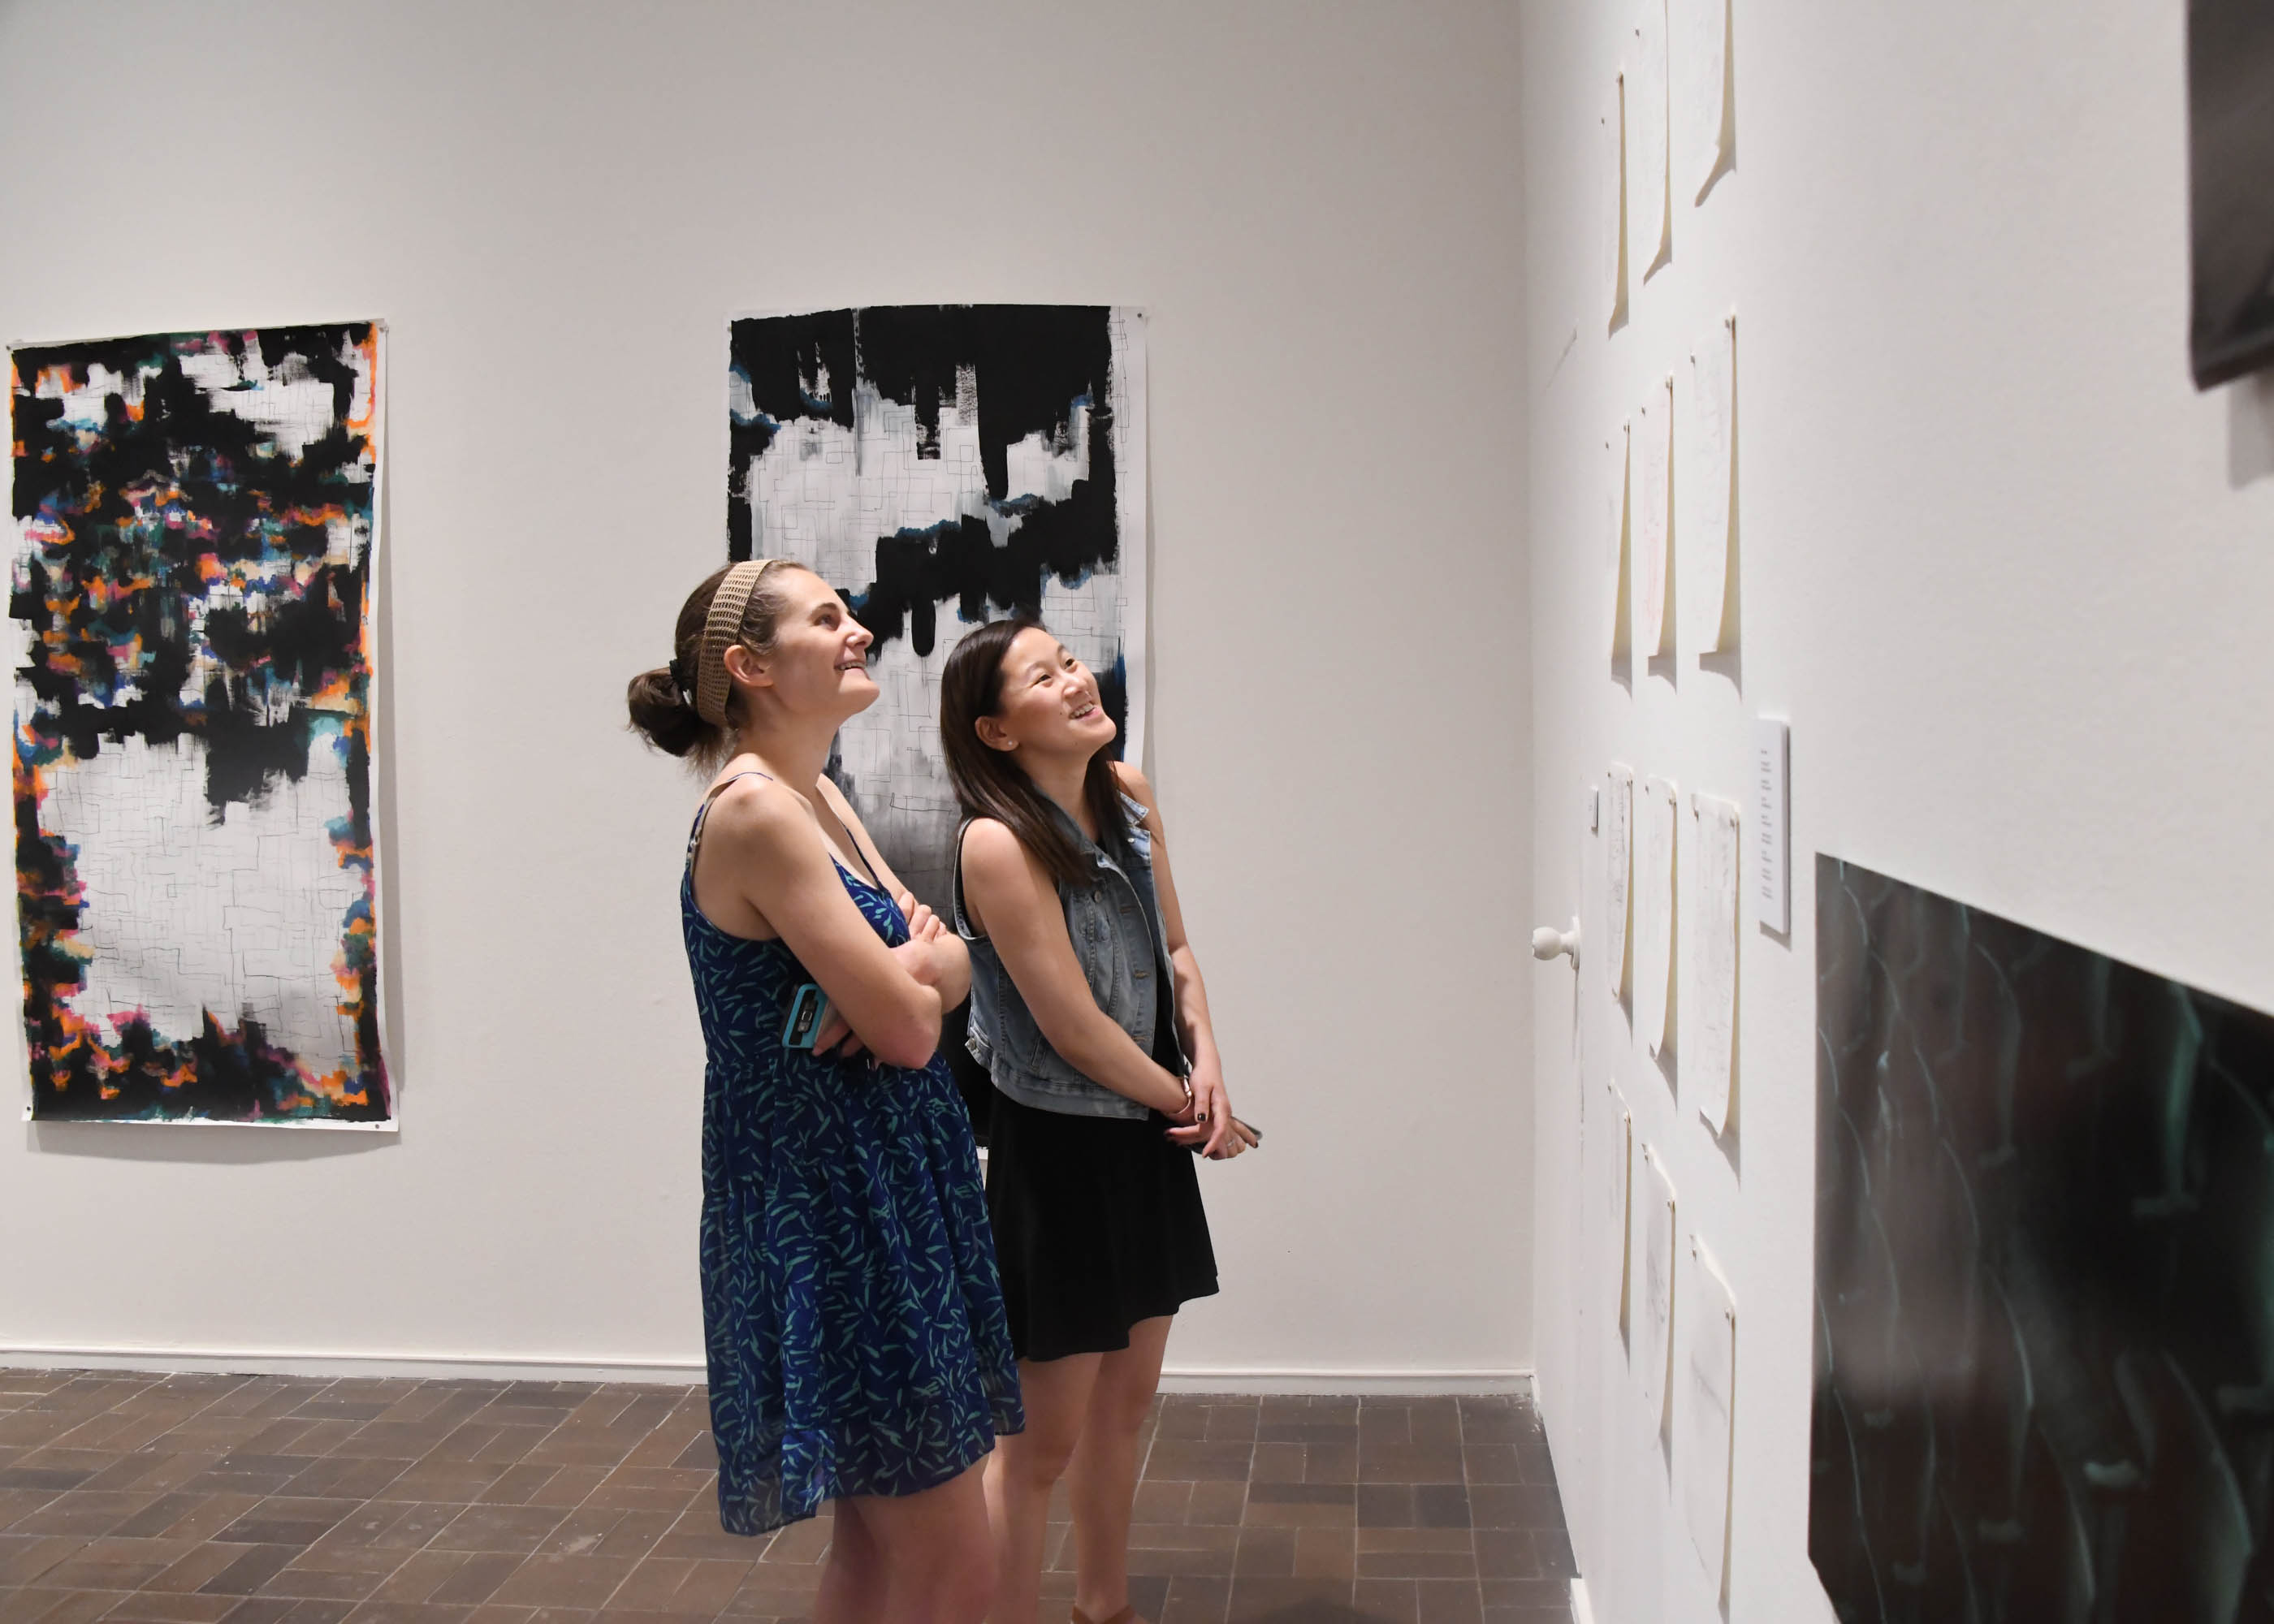 Image for Muhlenberg students view an exhibition by senior studio art majors. In addition to shows at the College's Martin Art Gallery, students have the opportunity to exhibit their work at annual exhibition at a studio in Brooklyn, New York.